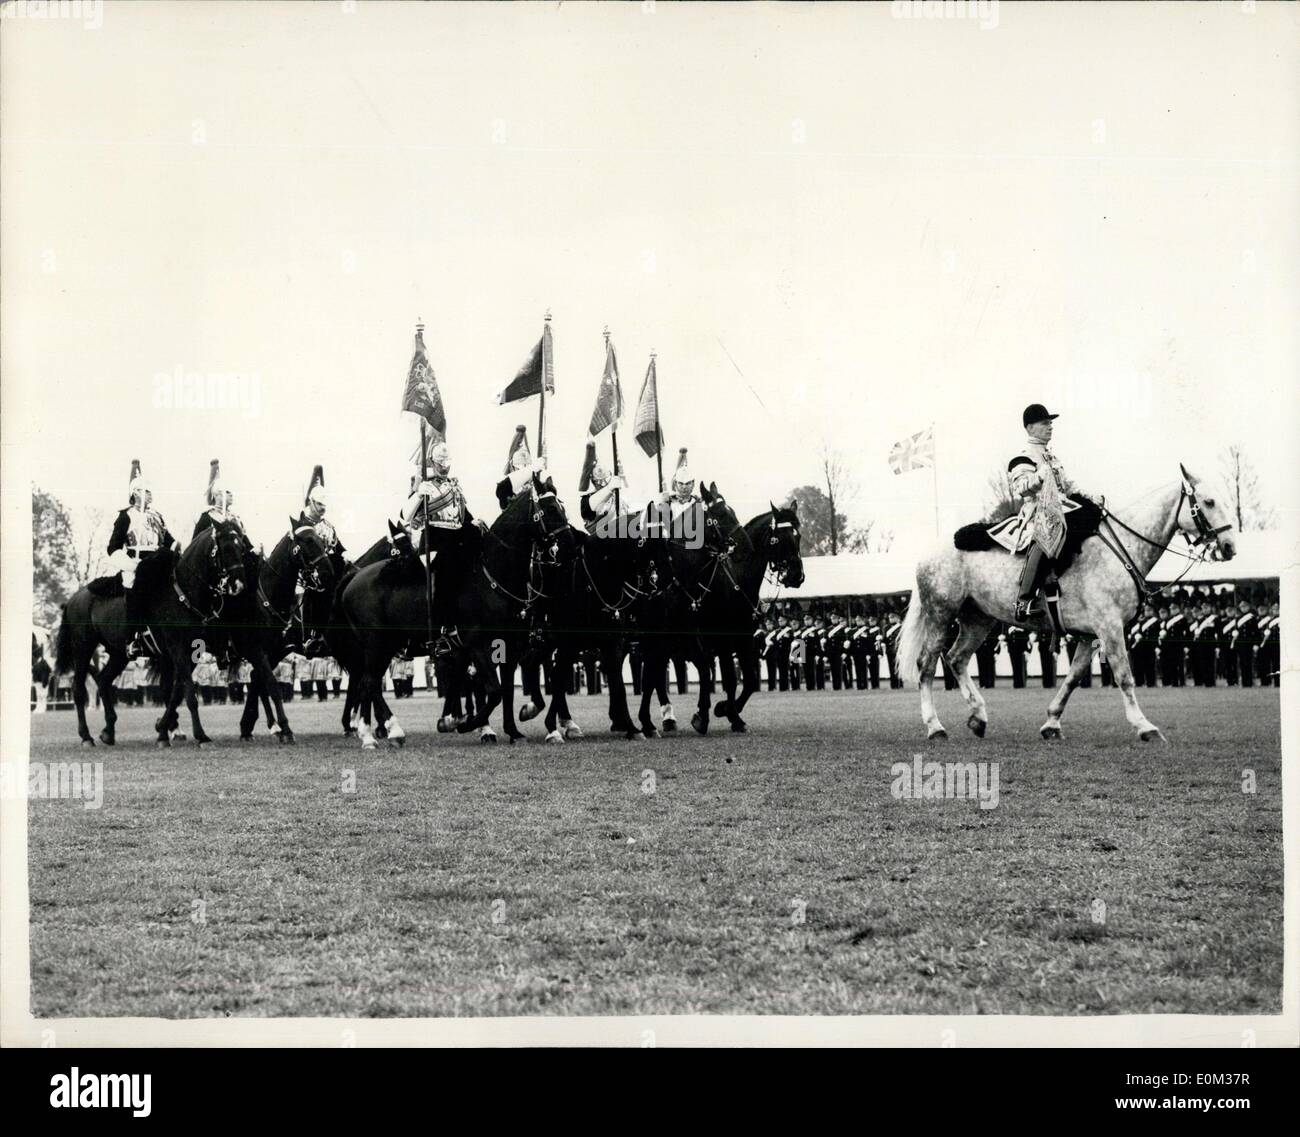 Apr. 28, 1953 - Queen presents new colours to Household Cavalry. Handing over at Home Park, Windsor ? H.M. The Queen this morning presented new colours the two regiments of the Household Cavalry, the Life Guards (The Reds) and the Horse Guards (The Blues) in a ceremony at Home Park, Windsor. Keystone Photo Shows: Carrying their new colours, men of ?The Blues parade past after the ceremony at Home Park, Windsor, today. JSS/Keystone - Stock Image